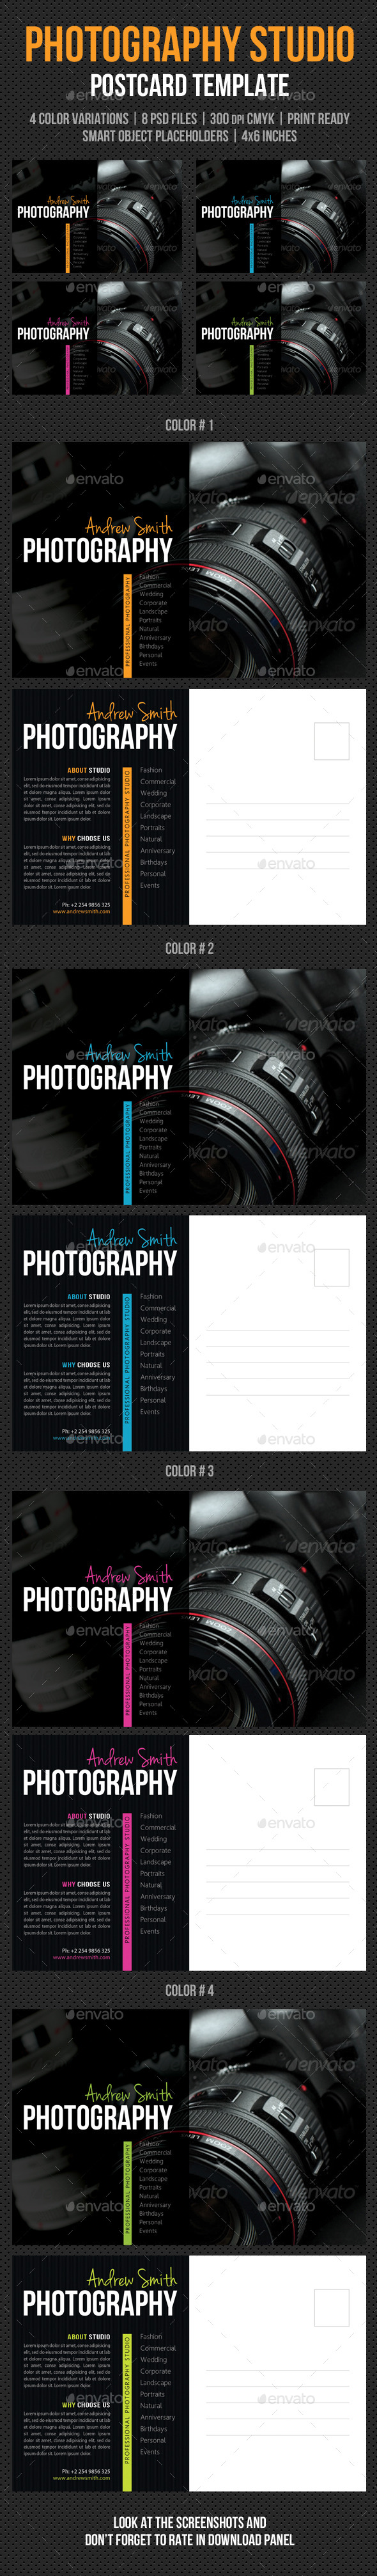 GraphicRiver Photography Studio Postcard Template V03 9844613